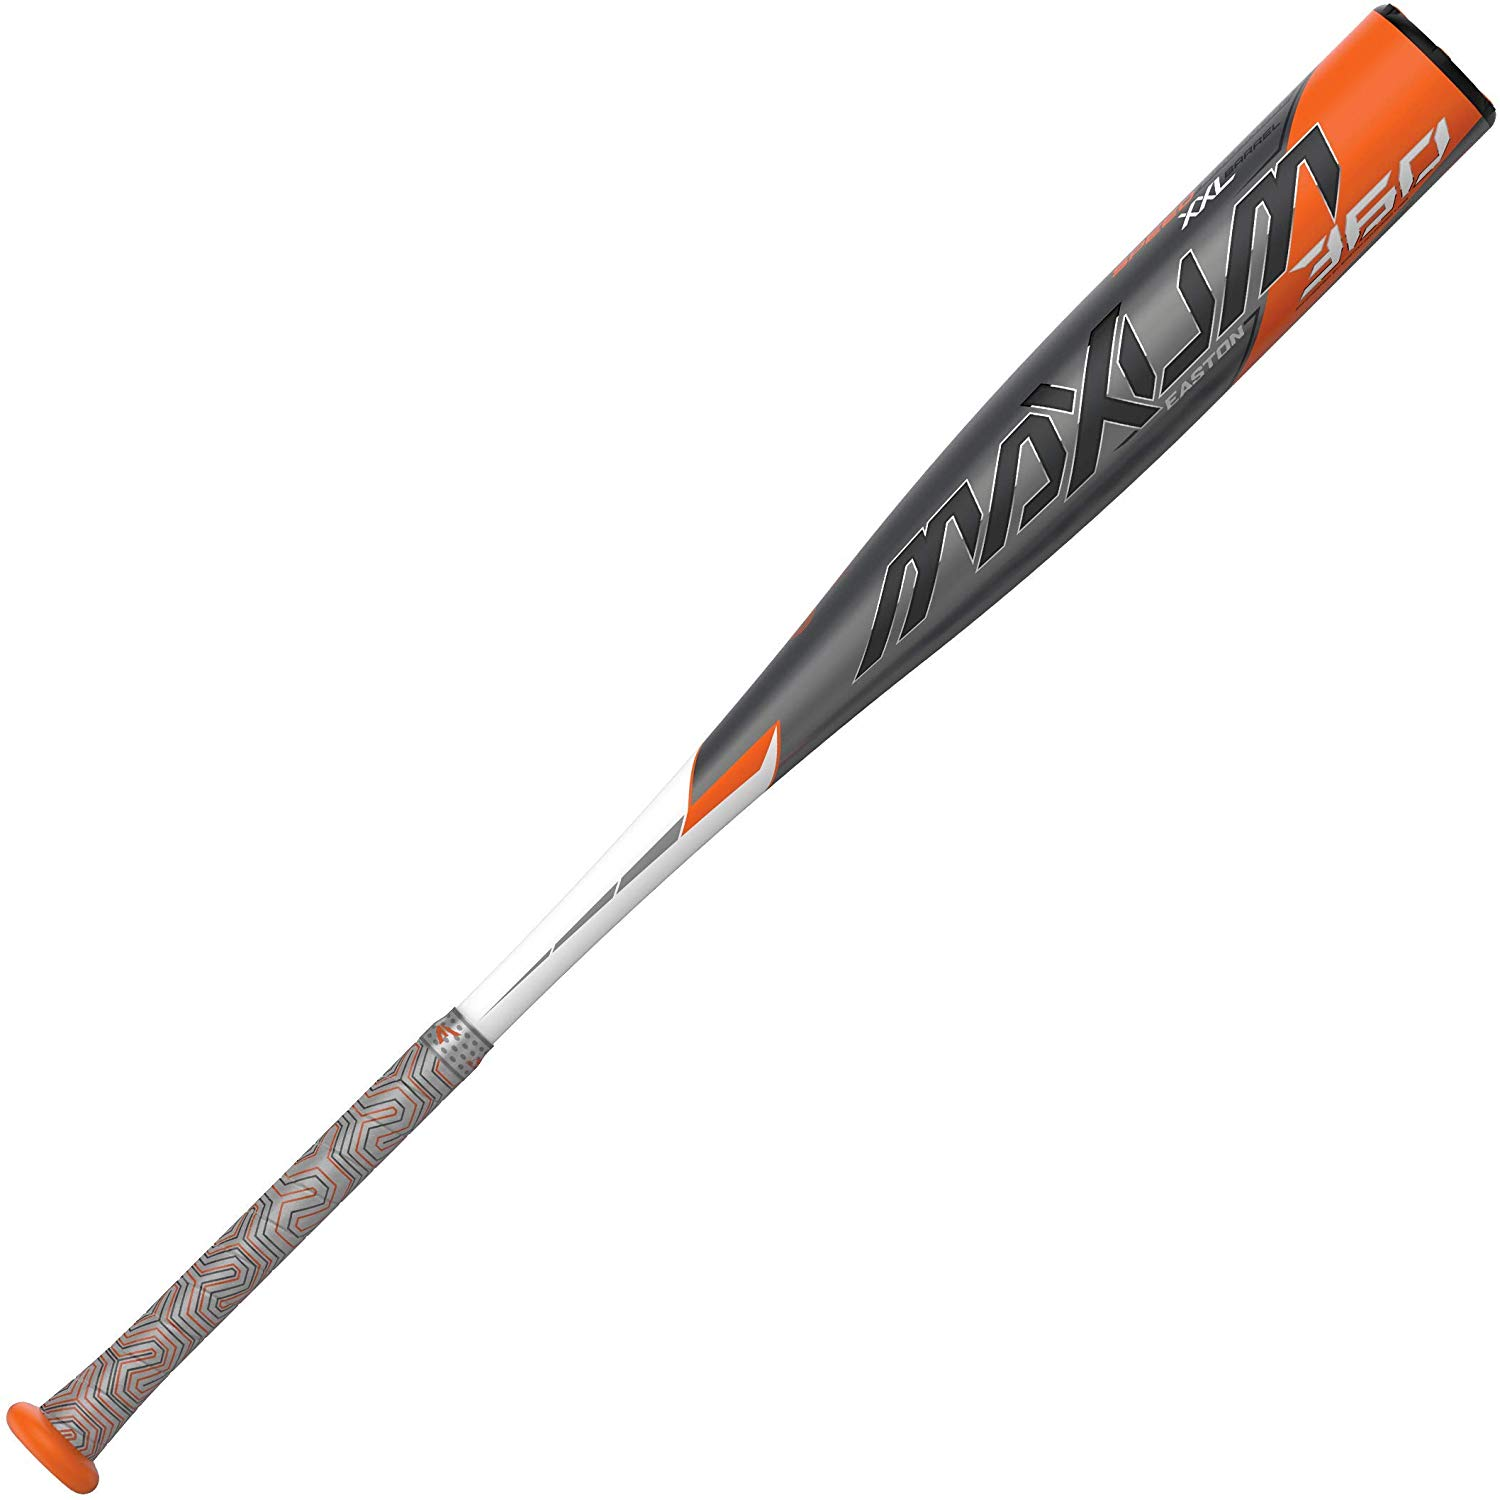 easton-maxum-360-bbcor-3-bb20mx-adult-baseball-bat-33-inch-30-oz BB20MX-3330  628412266298 `-3 Length to Weight Ratio 1-Piece Composite Speed Balanced Swing Weight